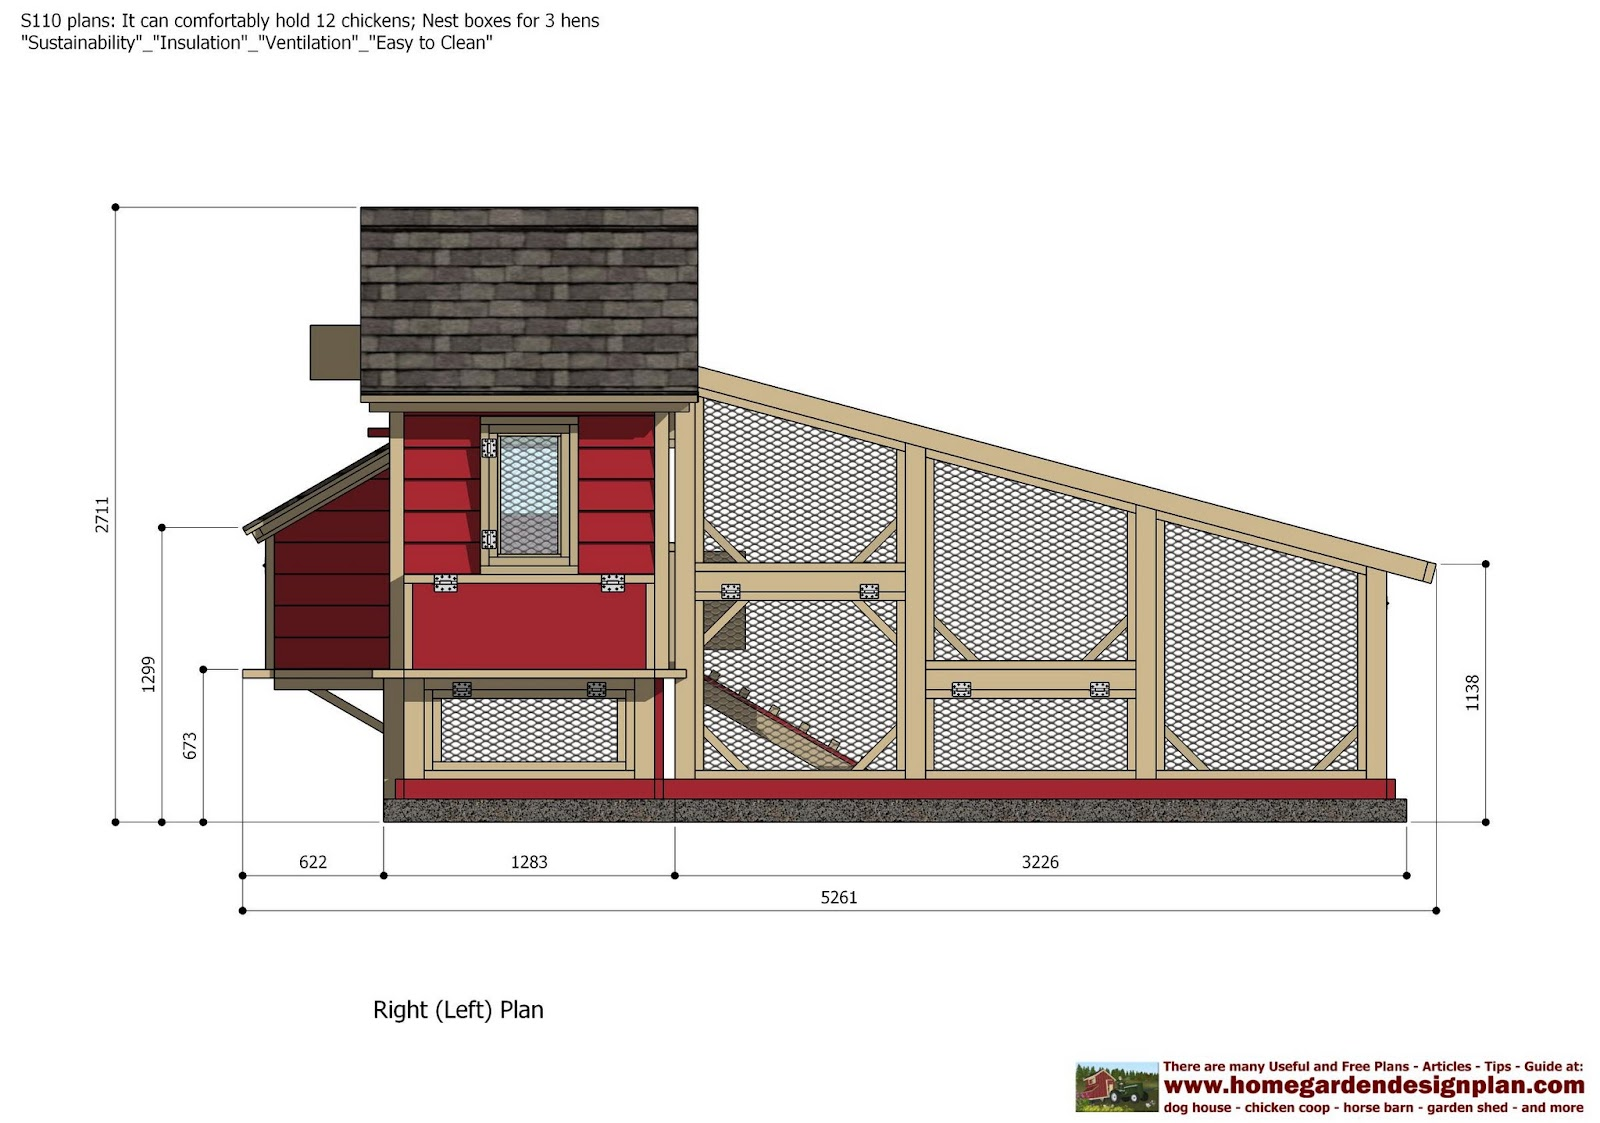 10 free chicken coop plans for backyard chickens the for Chicken coop plans free pdf